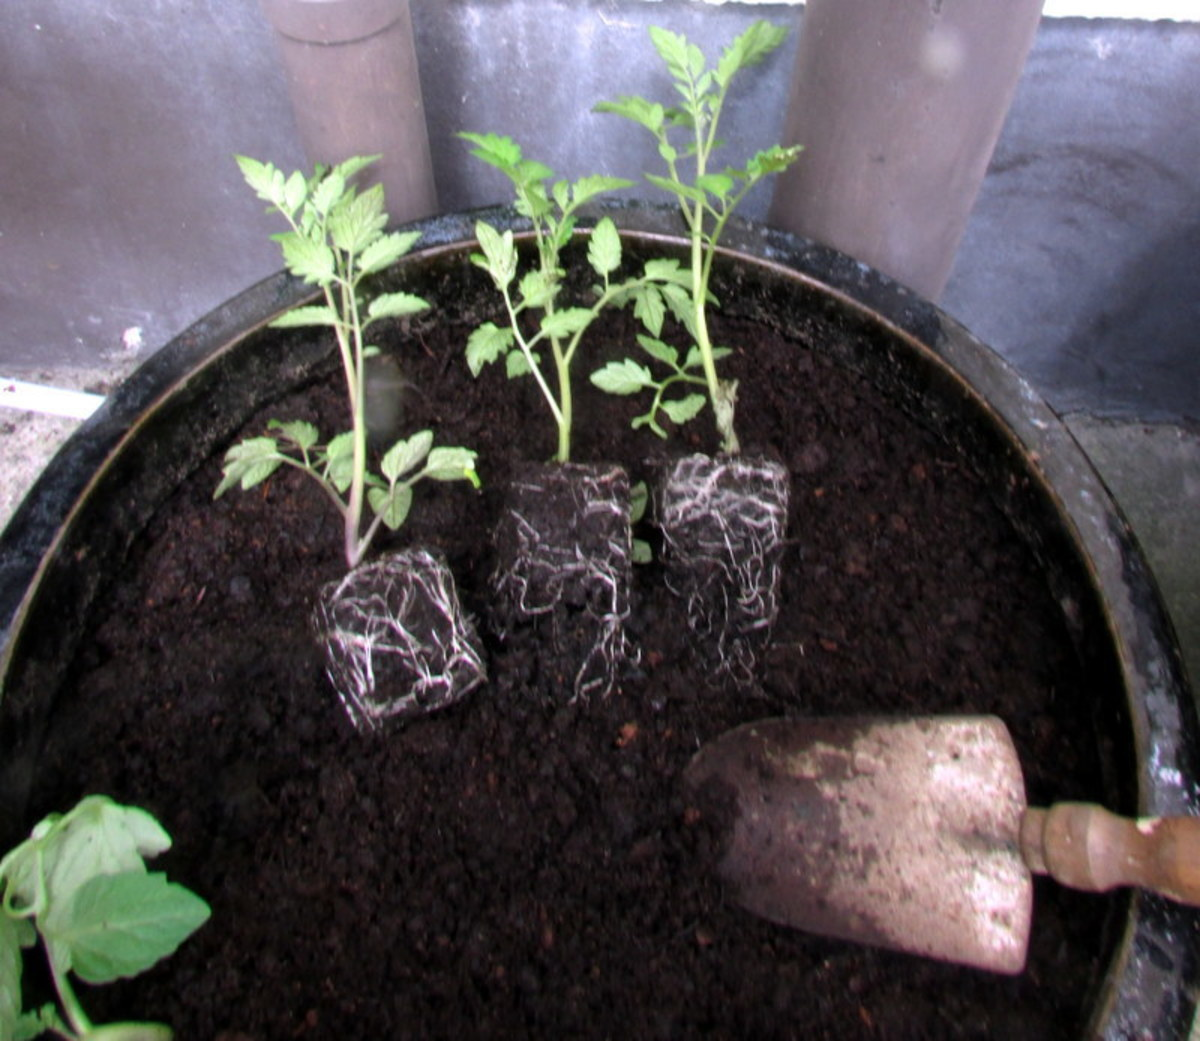 Tomato plants ready to transplant in a container.